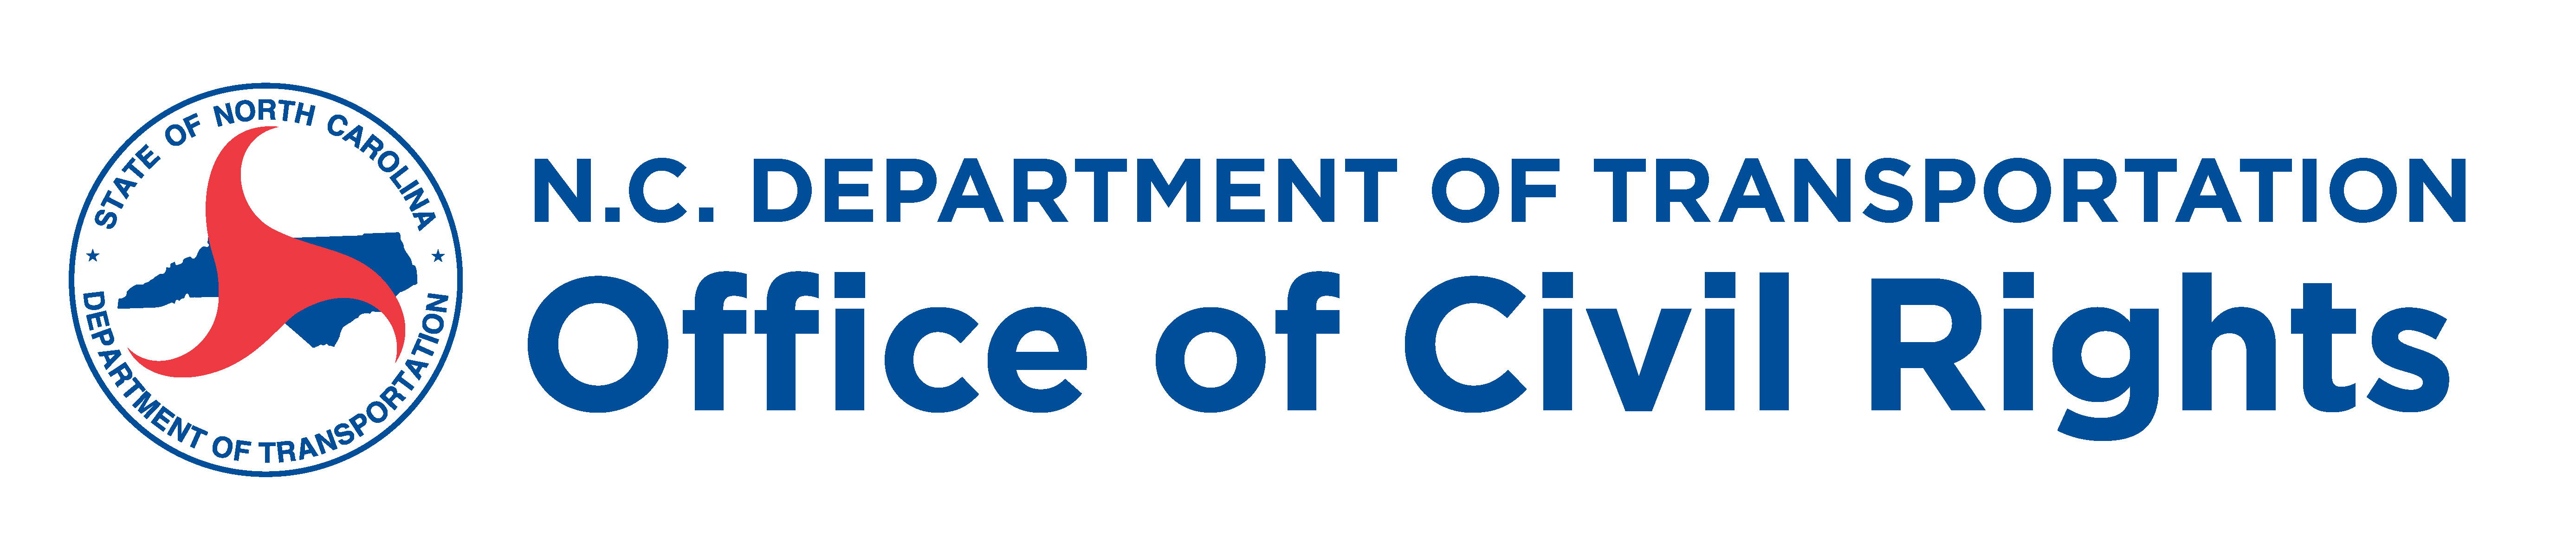 office of civil rights ncdot logo